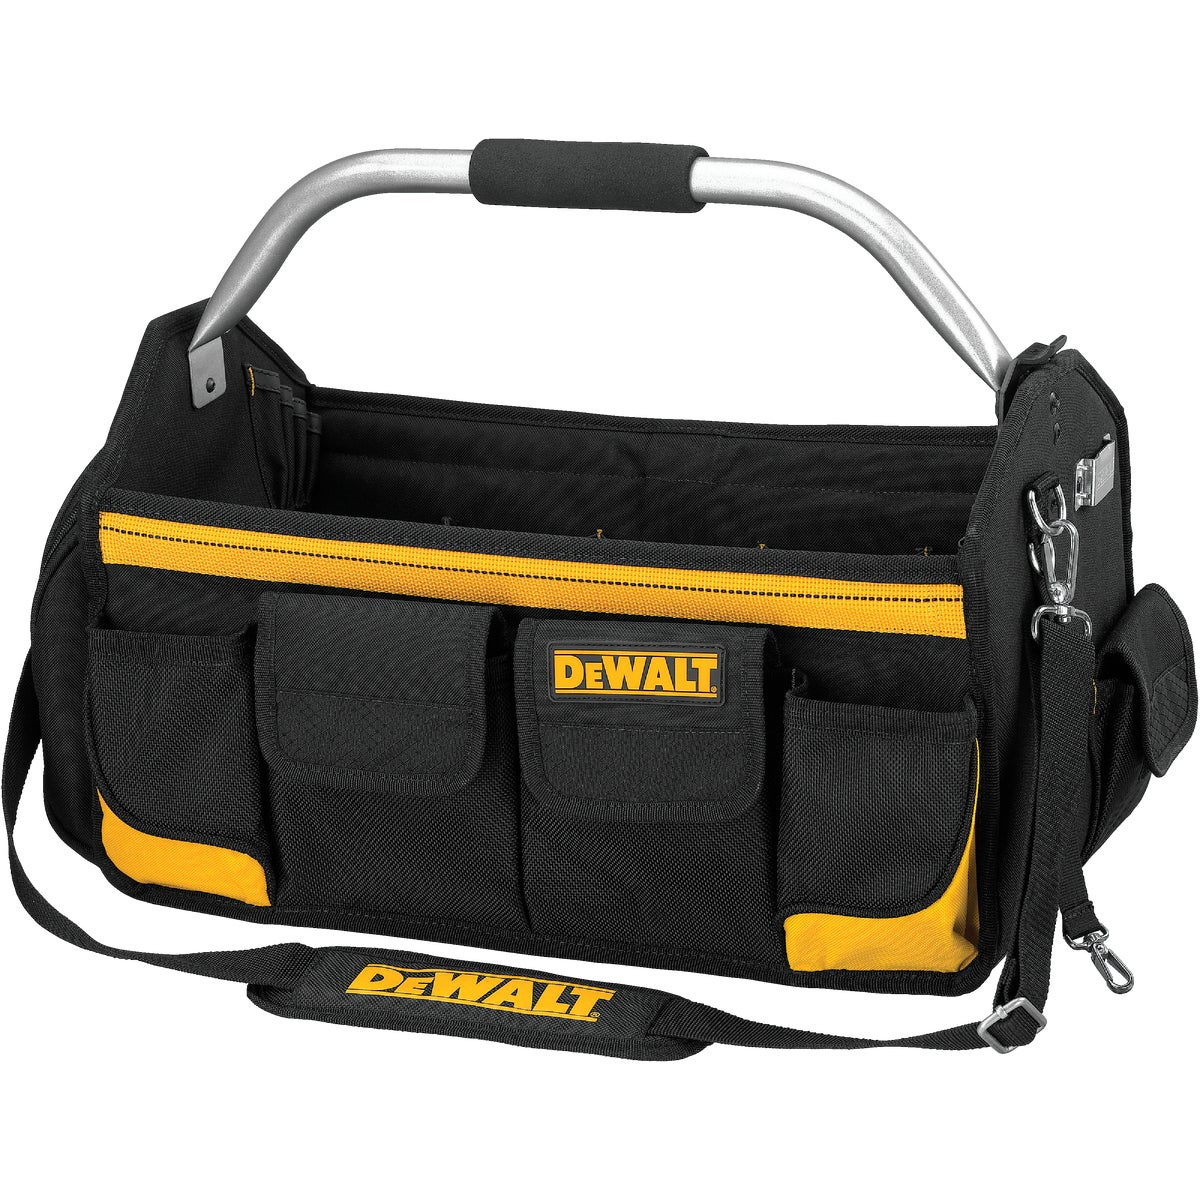 "14"" OPEN TOP TOOL BAG - DG5587 by Custom Leathercraft"